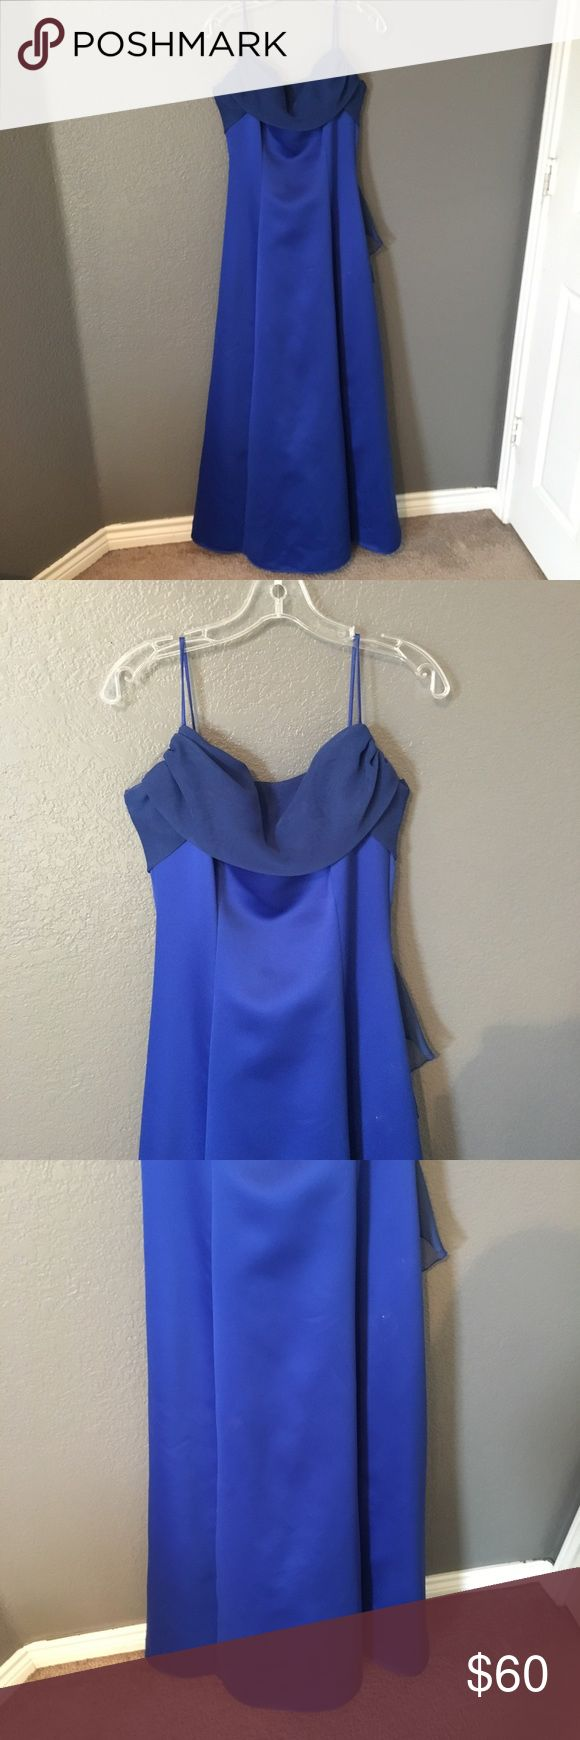 Blue Prom Dress Beautiful dress to make you look absolutely stunning on prom night or at any other formal occasion. Has spaghetti straps, netting underneath, zips in the back, and a beautiful bow. Size 11/12. Lining inside is purple. Fabric distribution pictured above. Only worn once and in excellent condition. No trades, no holds, serious inquiries only. Dresses Prom